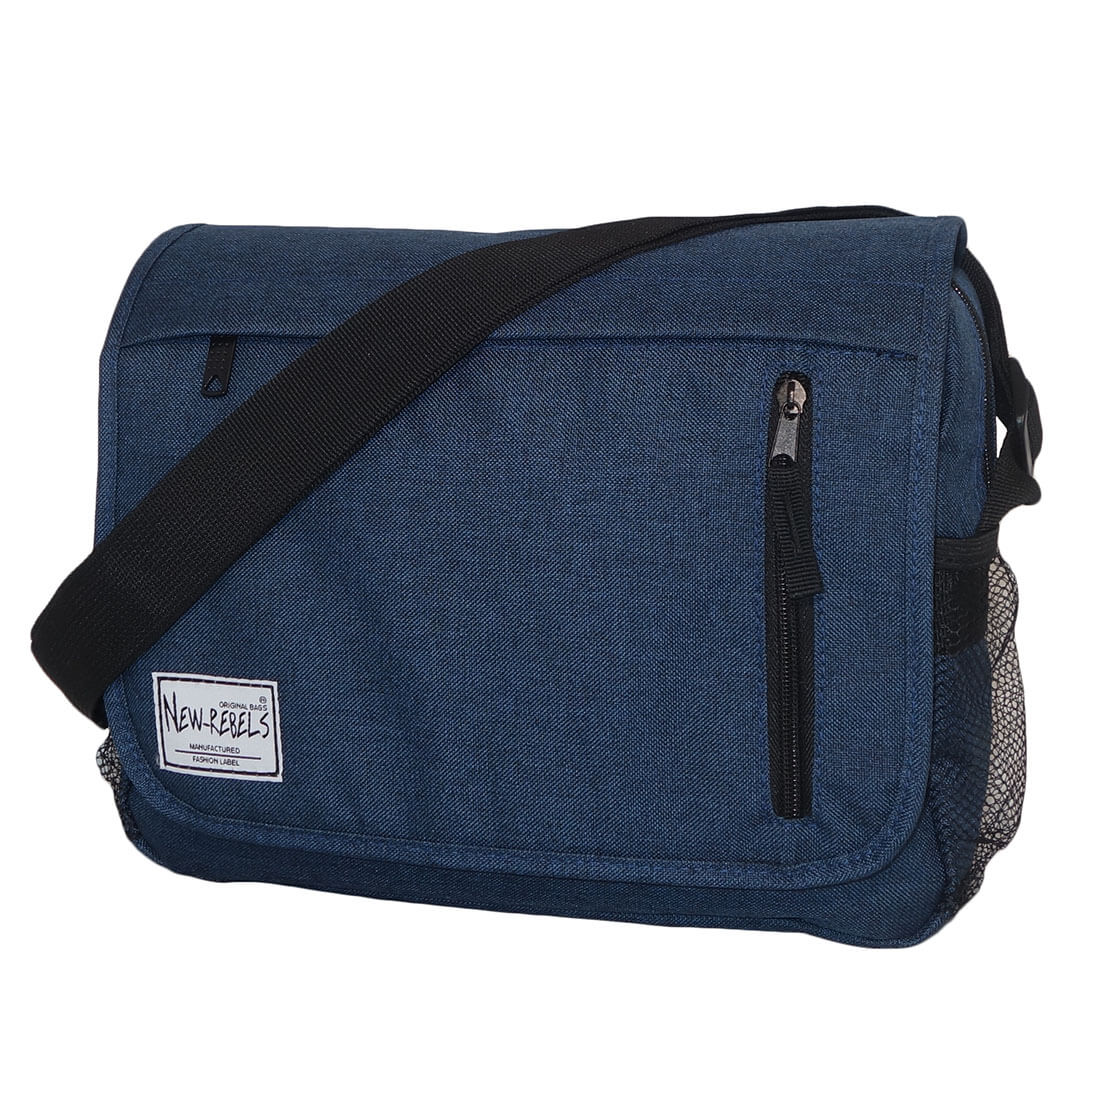 New Rebels Schoudertas met Overslag Basic Plus Blauw-0